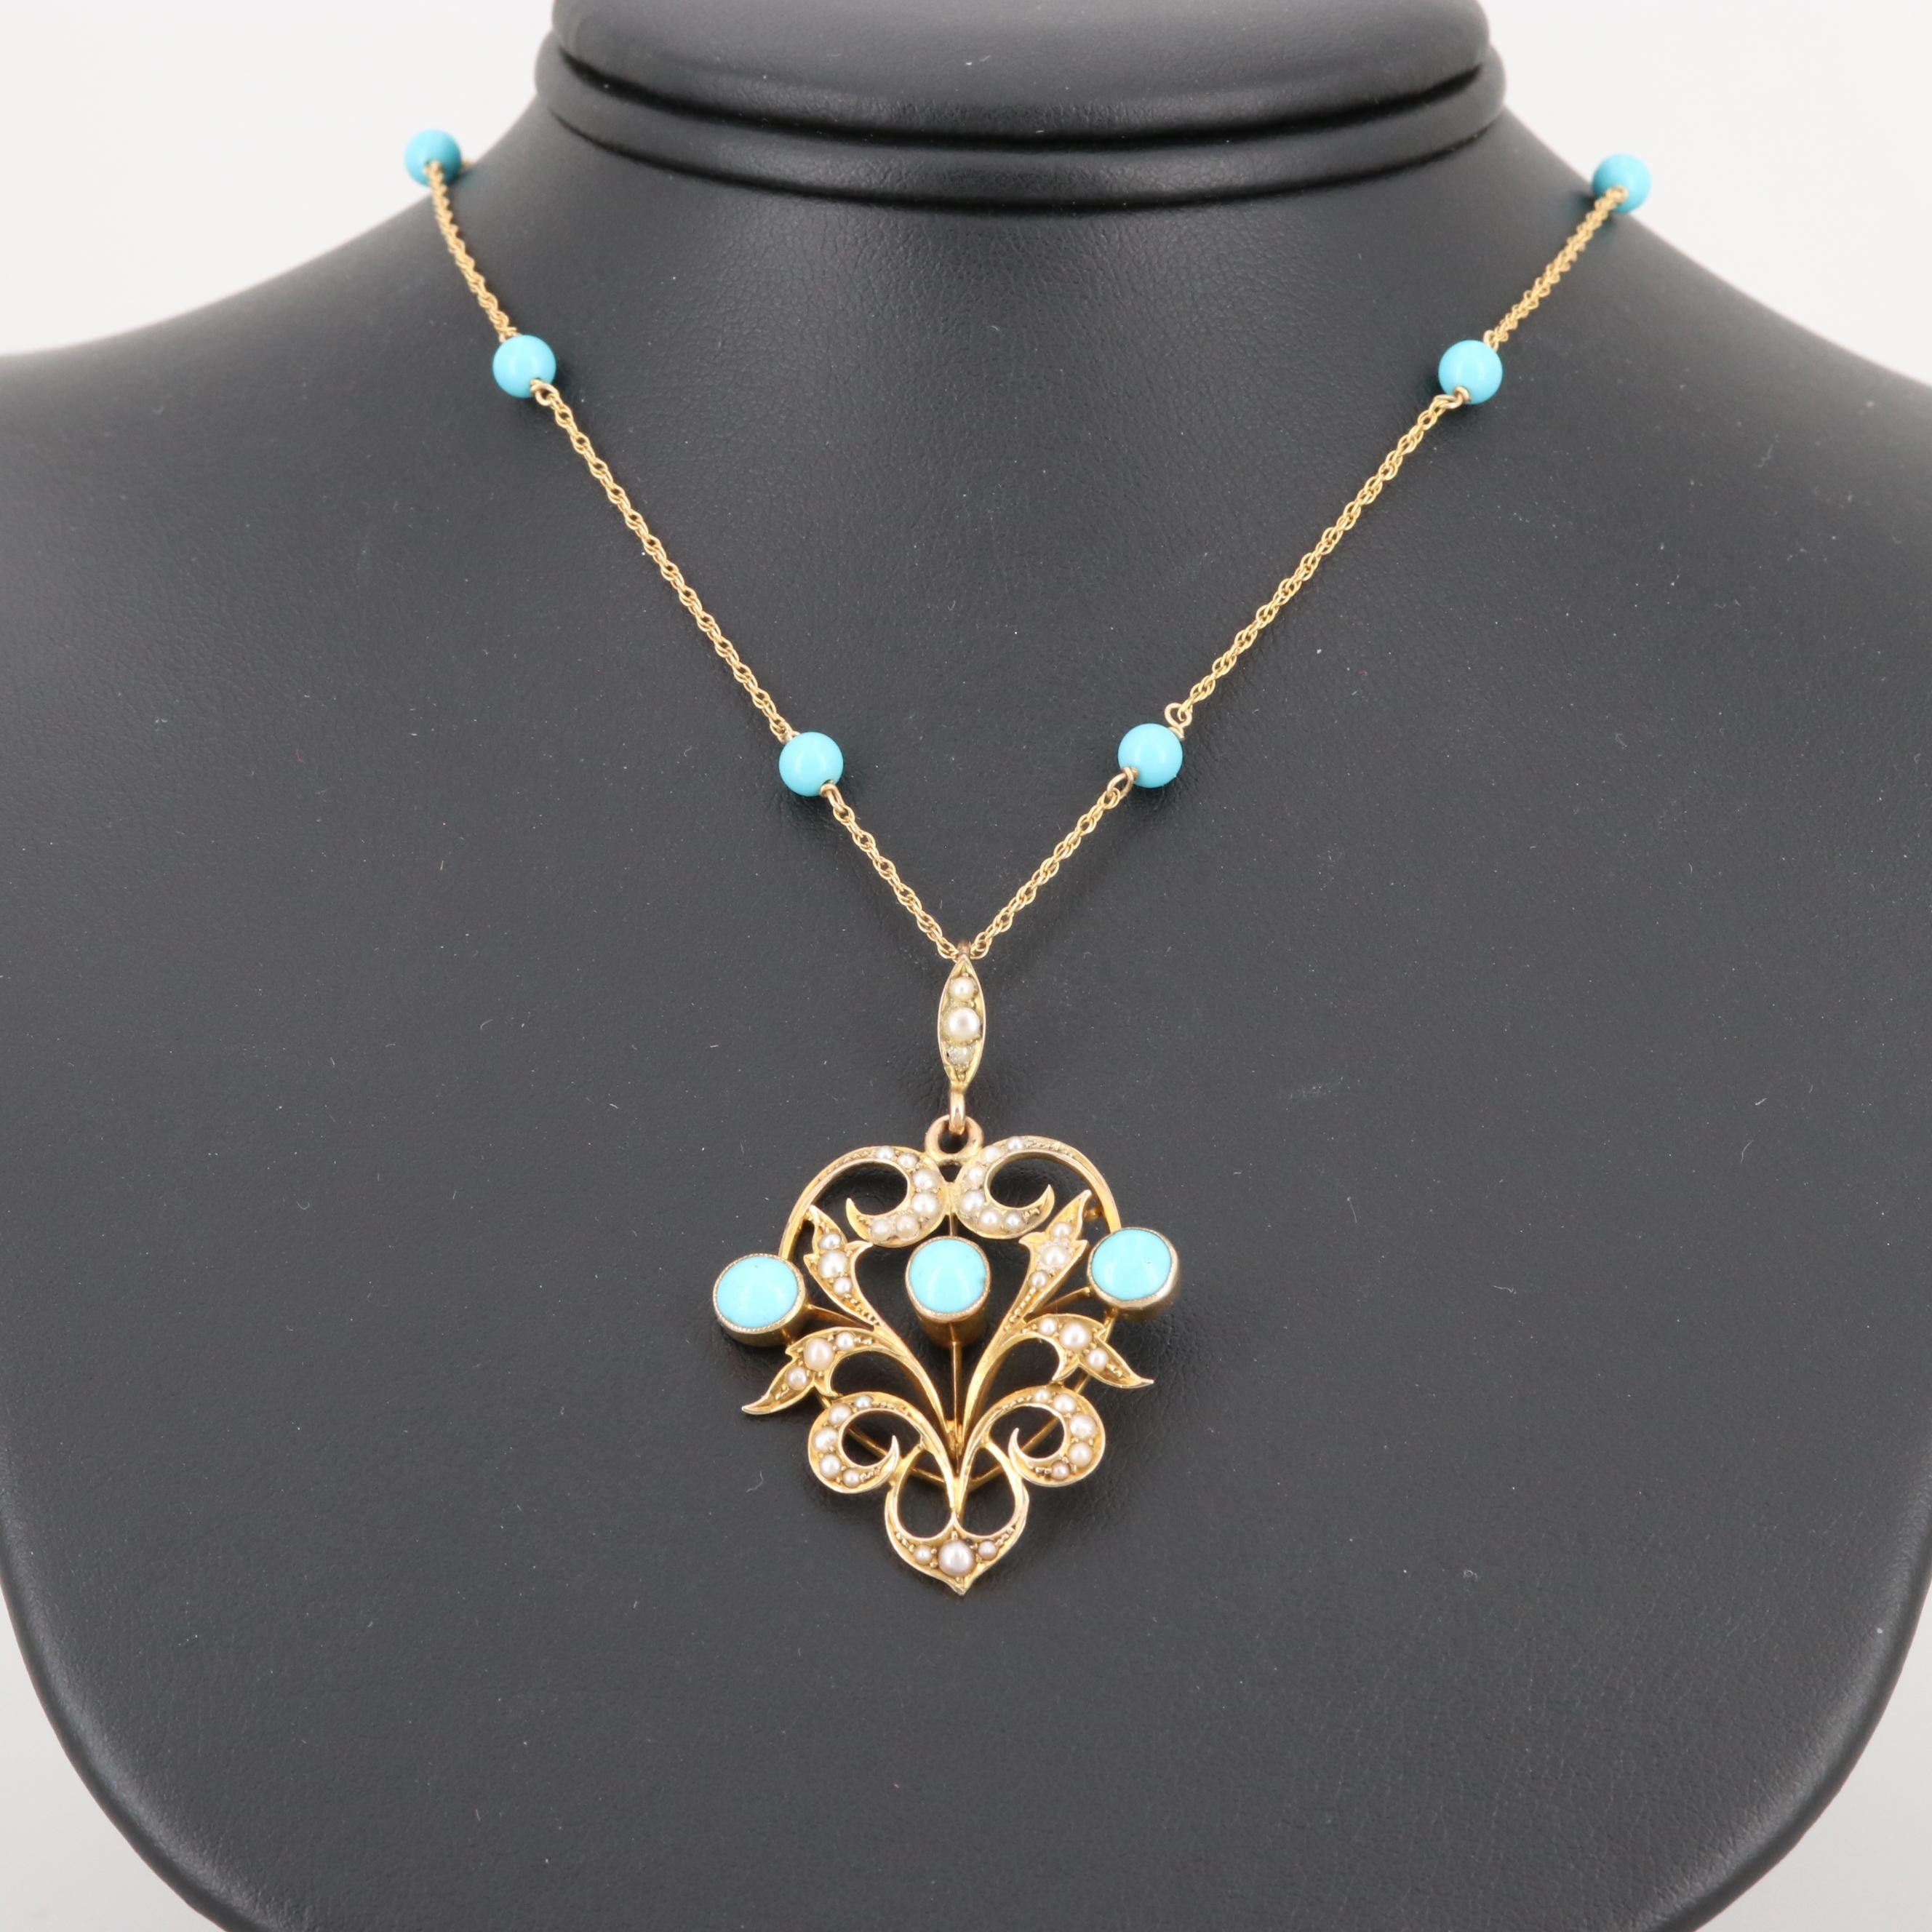 Victorian 9K Yellow Gold Turquoise and Seed Pearl Pendant on 14K Gold Necklace